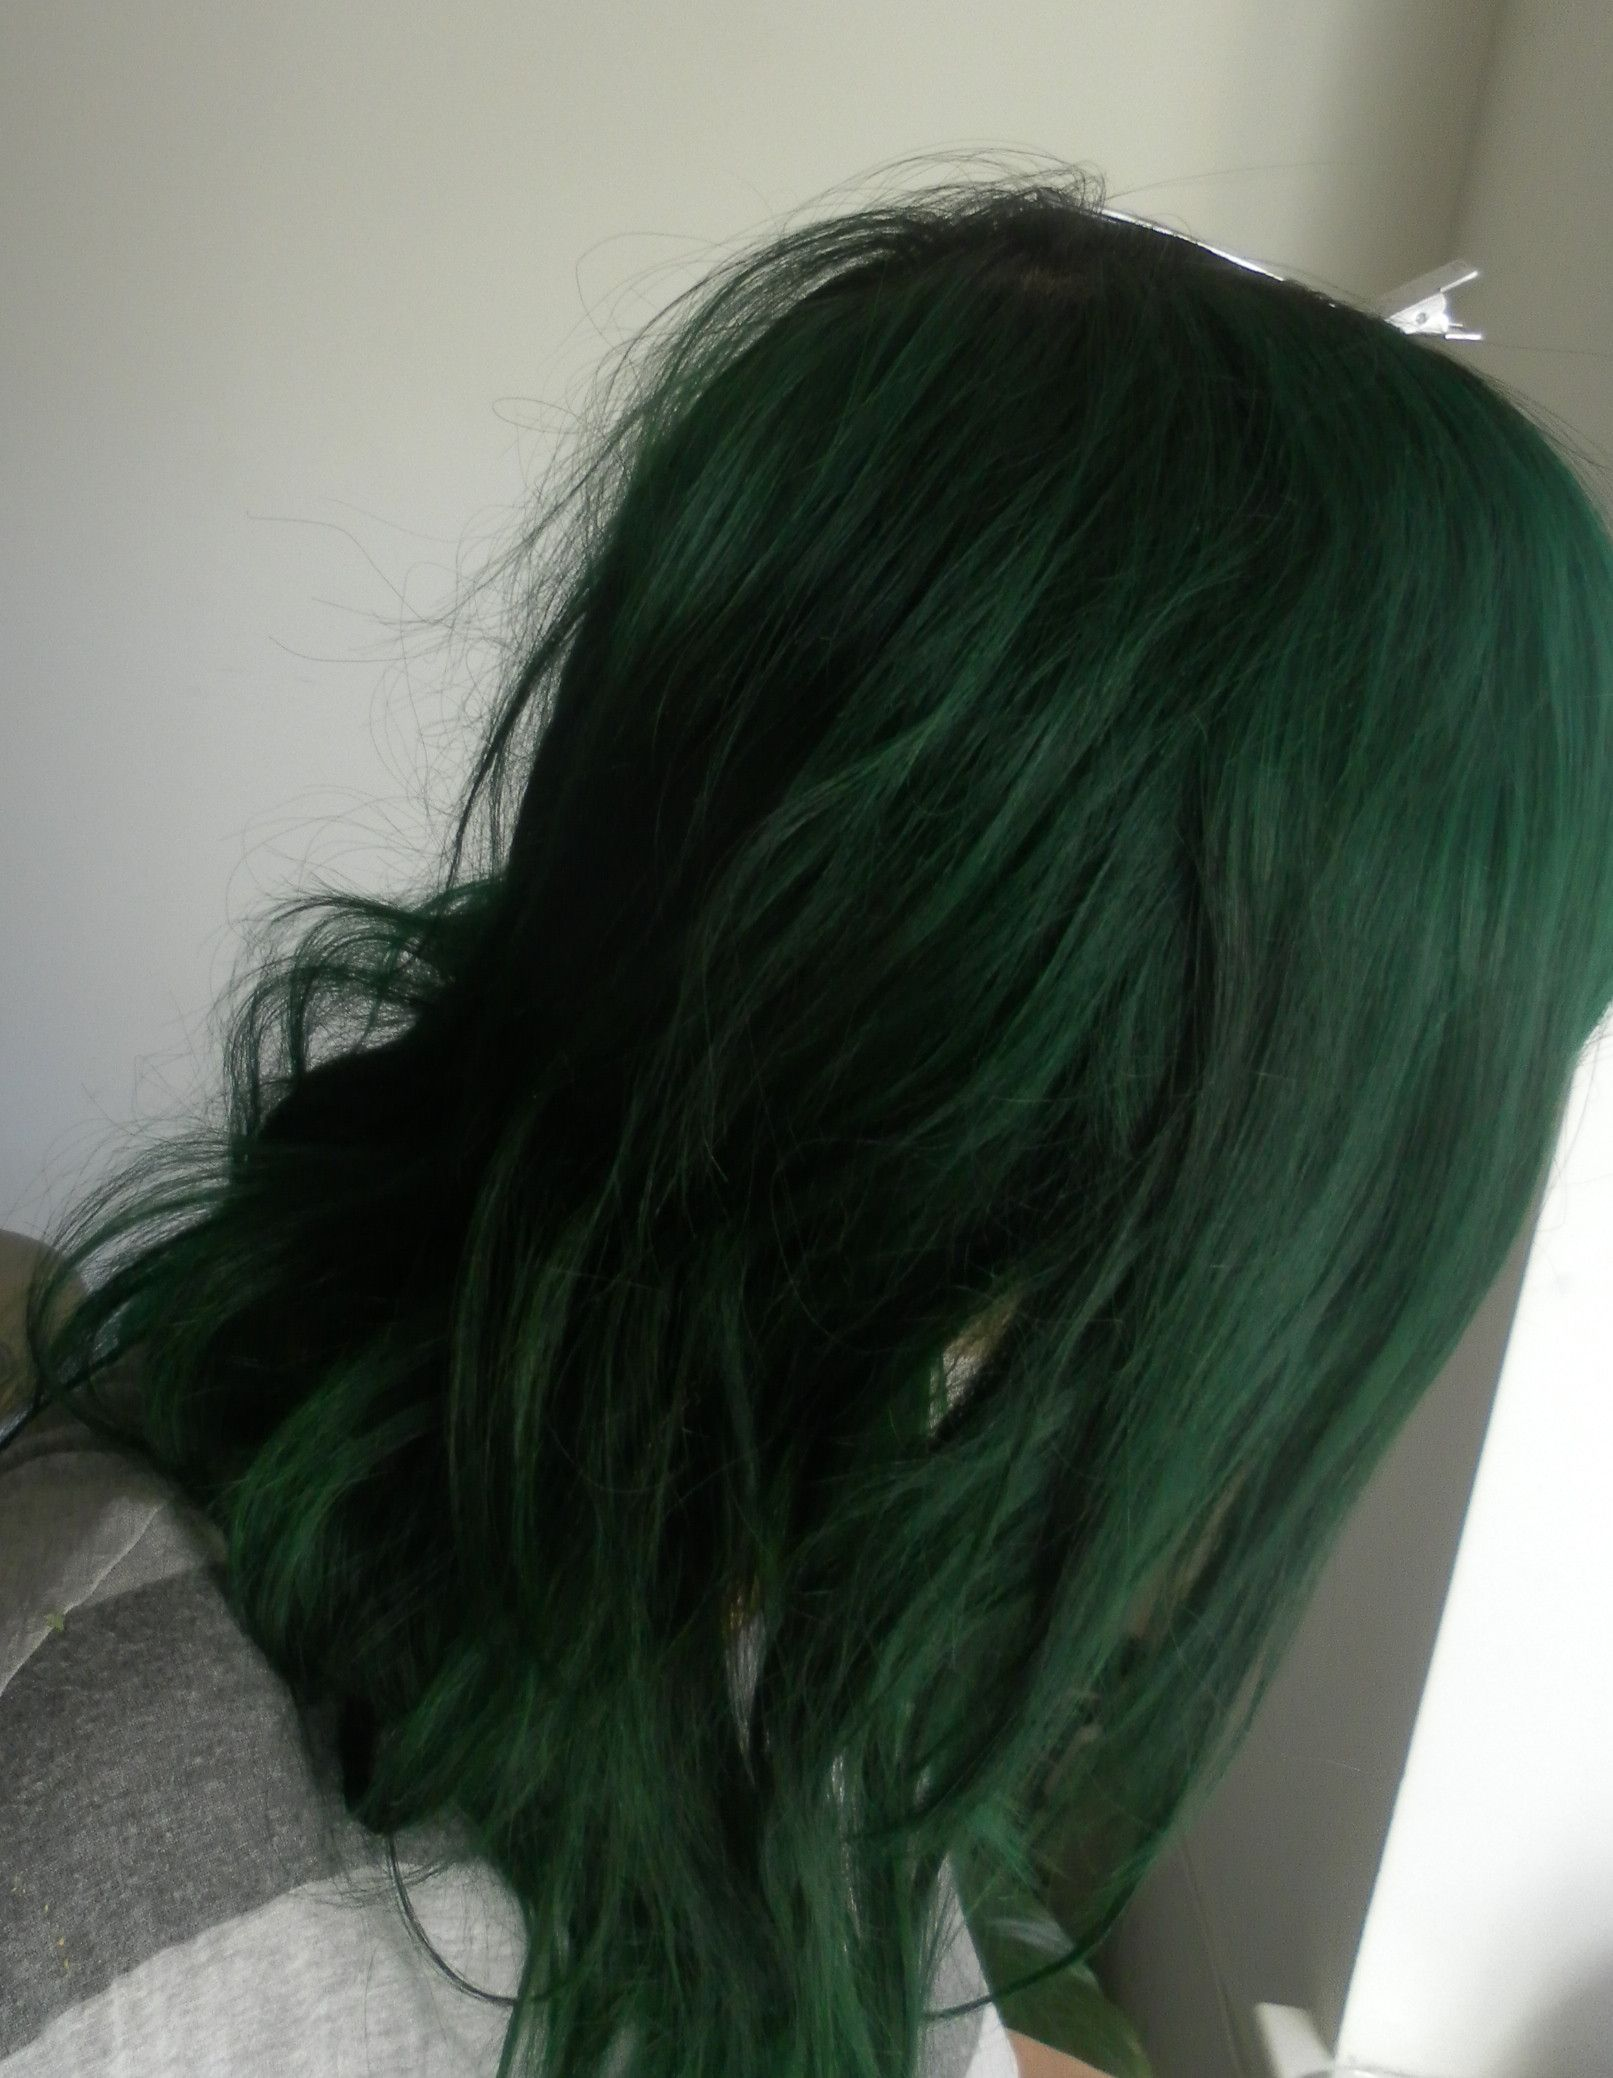 Alternative to black manic panic enchanted forest unbleached hair